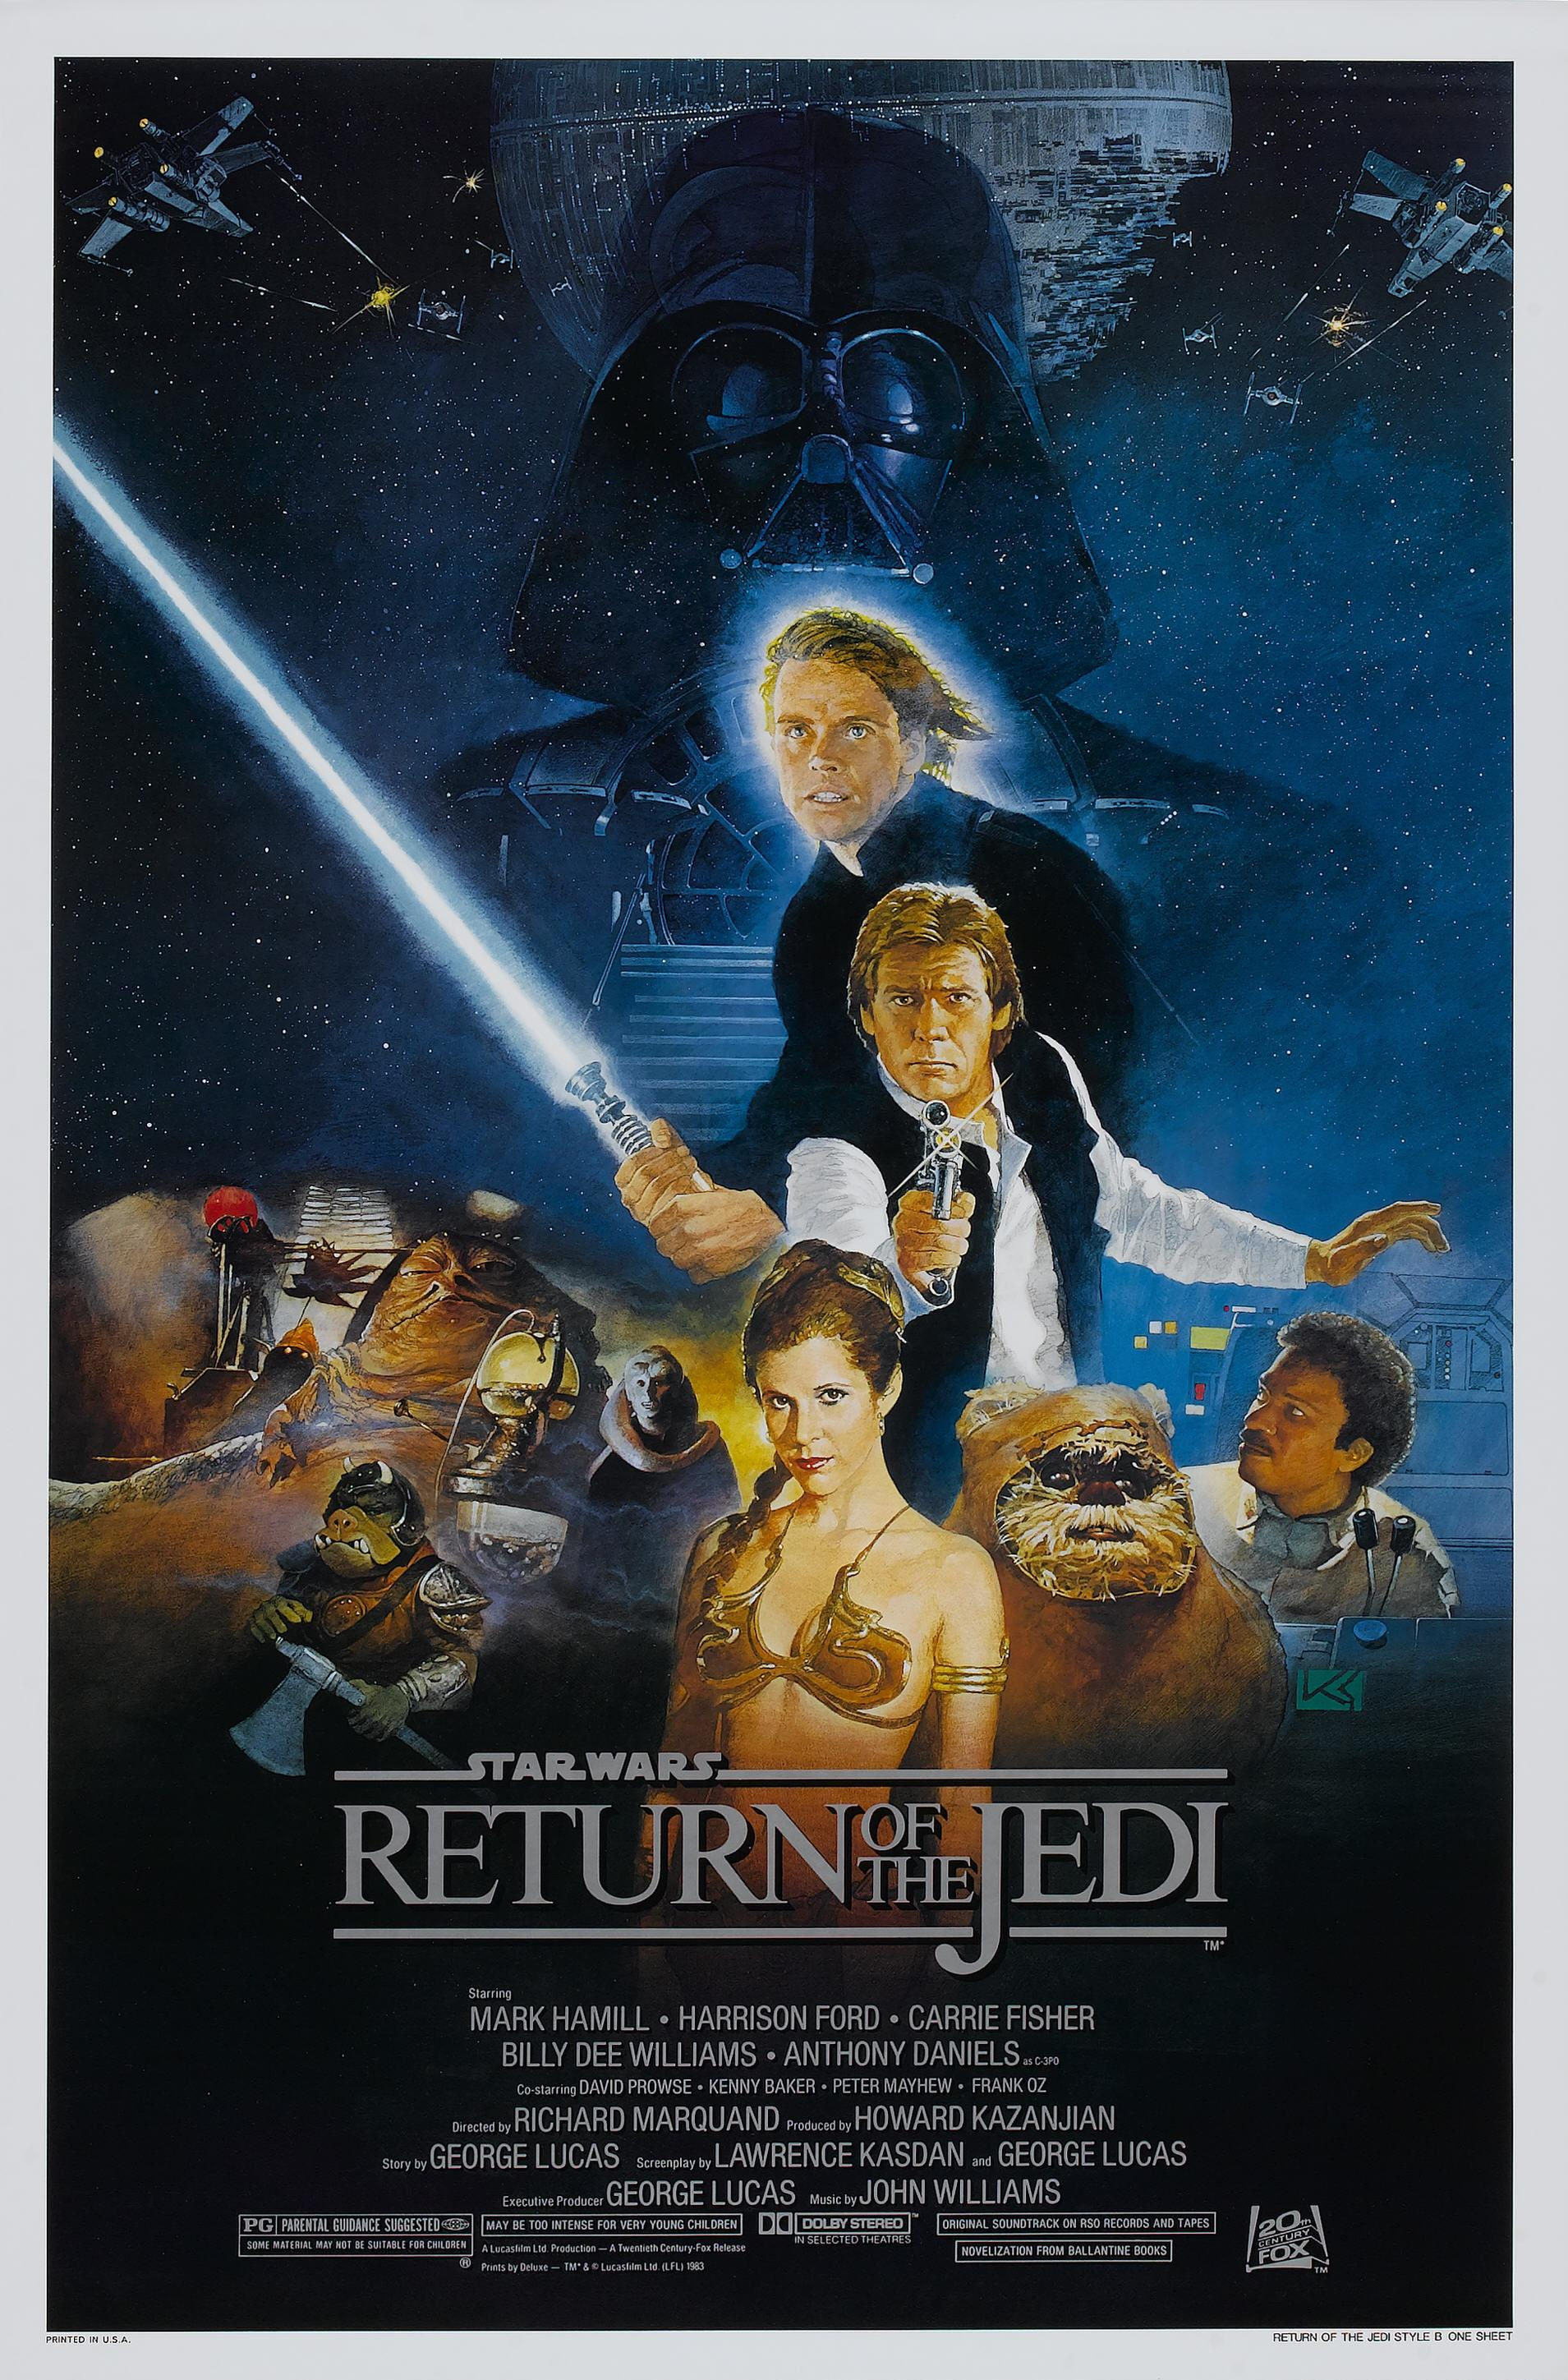 Star Wars spinoff ideas from Return of the Jedi